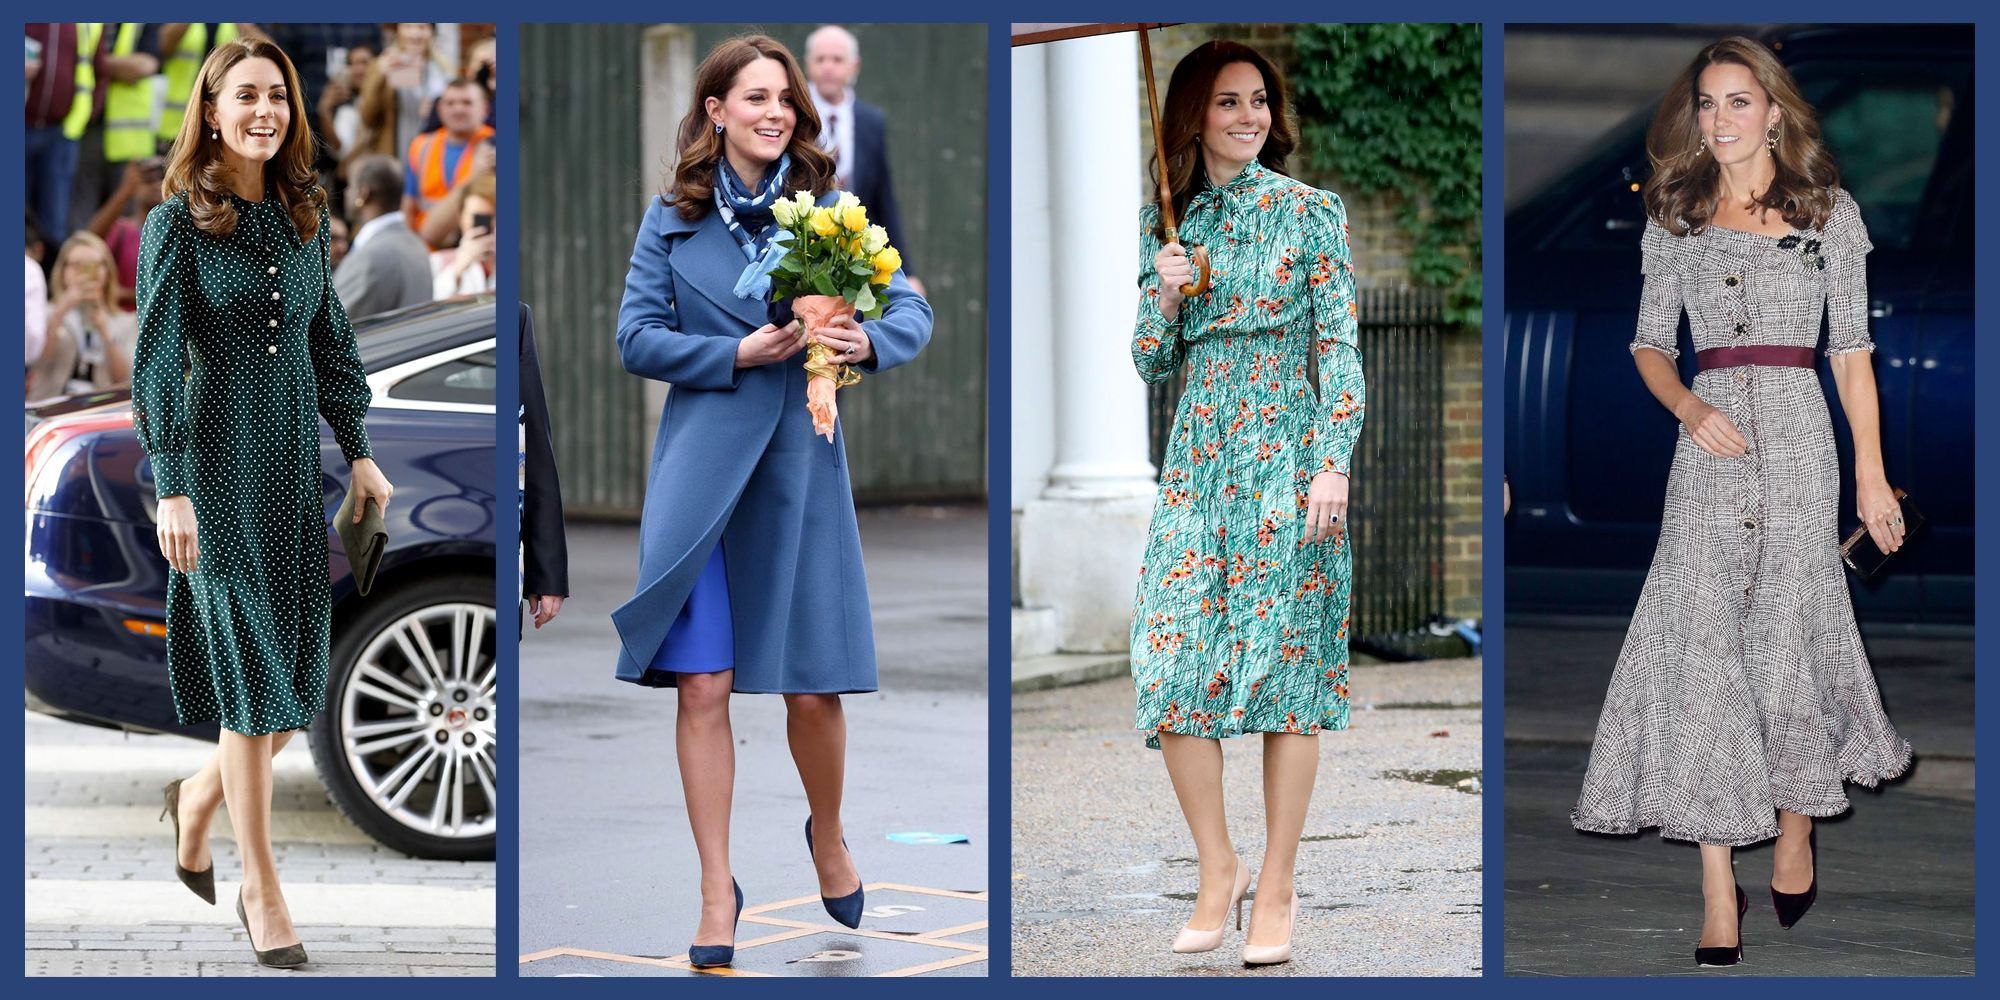 Kate Middleton\u0027s Best Fashion Looks , Duchess of Cambridge\u0027s